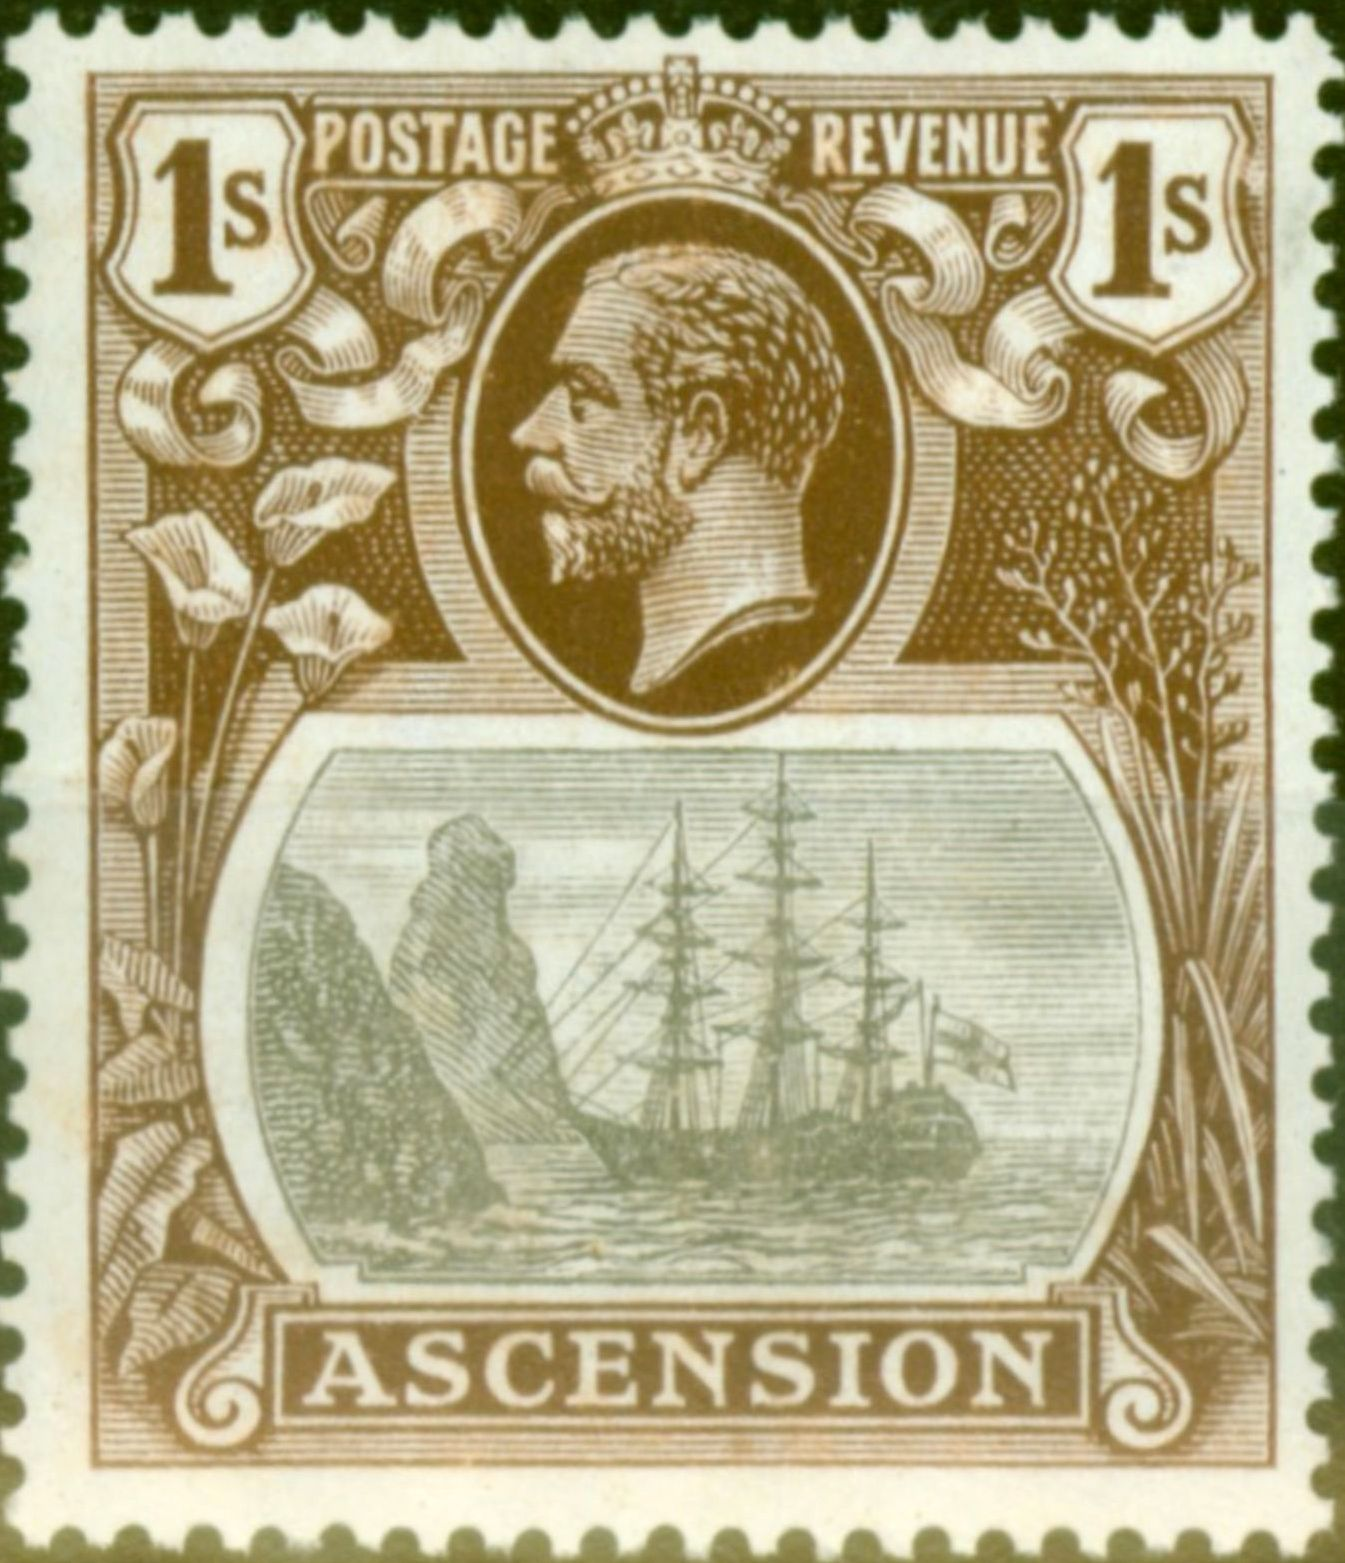 Ascension 1924 Seal of the Colony ja.jpg